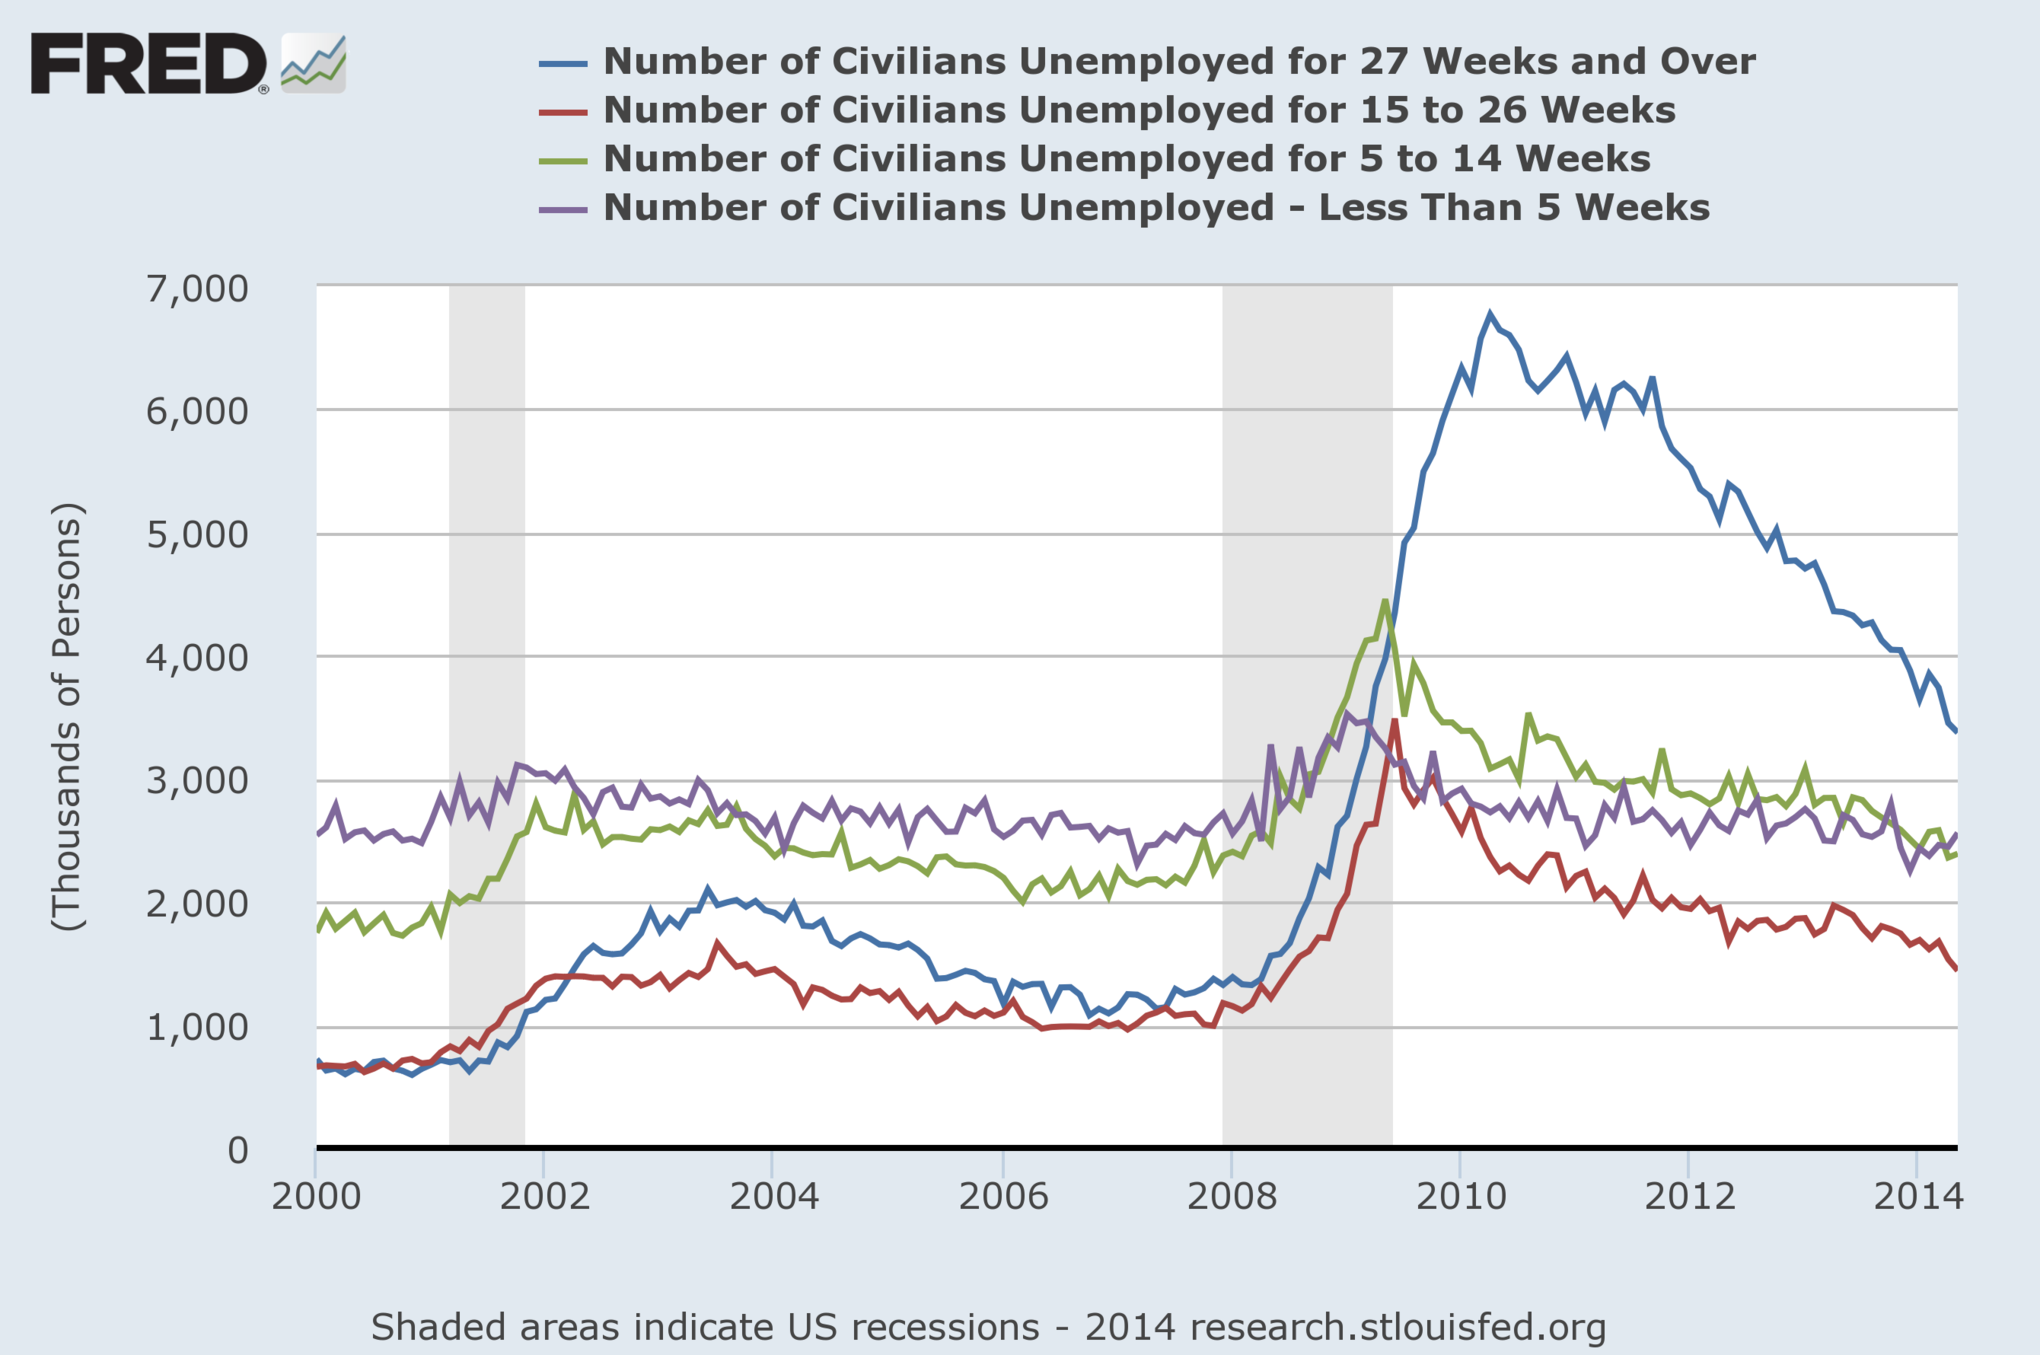 We're staying unemployed for an unusually, terribly long amount of time.